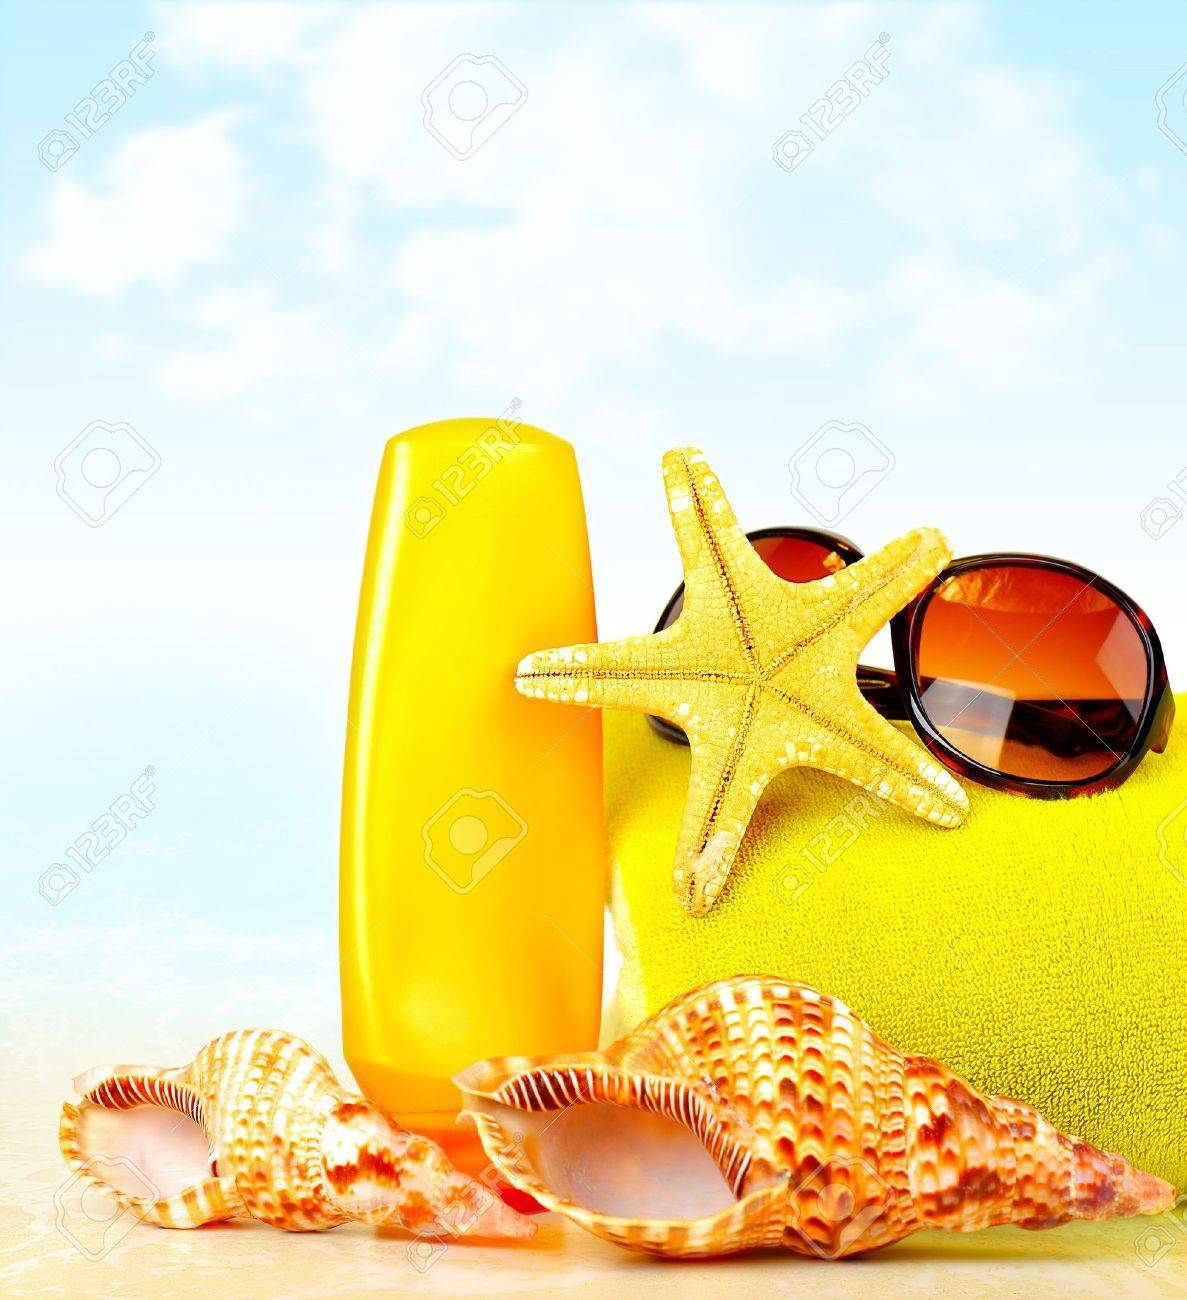 Summertime holidays background, beach objects on the sand, fun of travel concept Stock Photo - 10184067